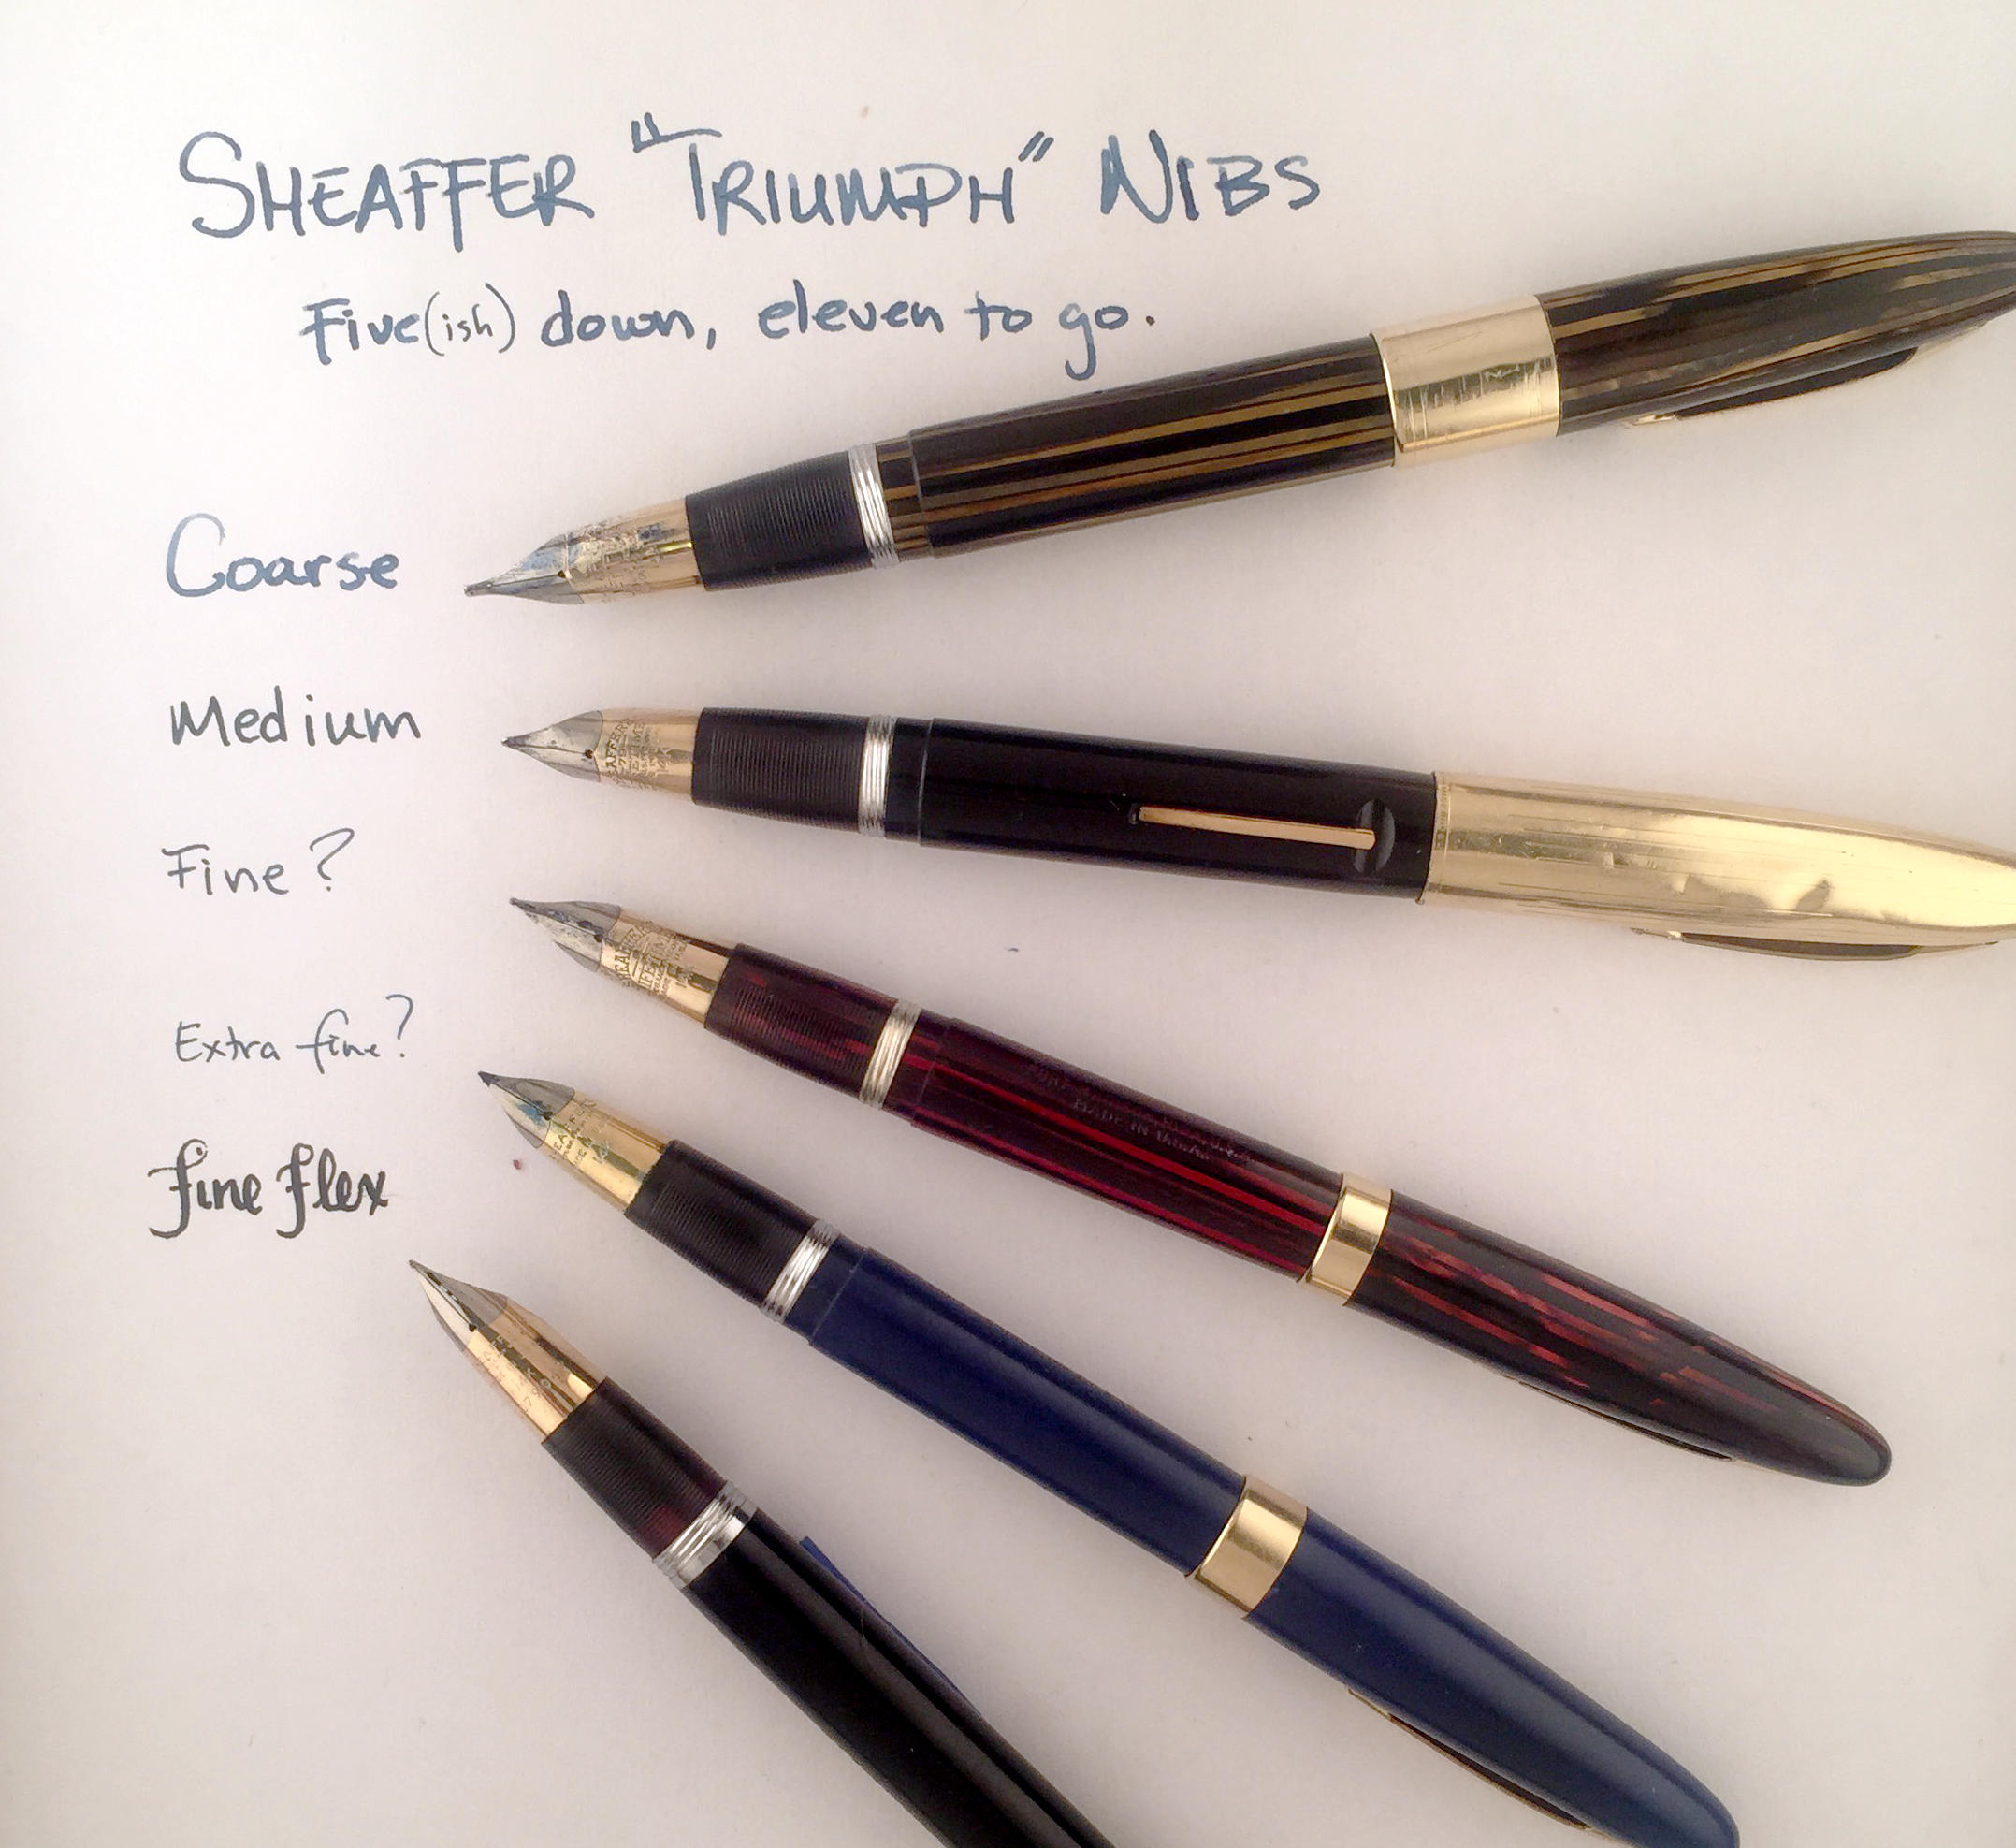 My Sheaffer Triumph Nibs so far